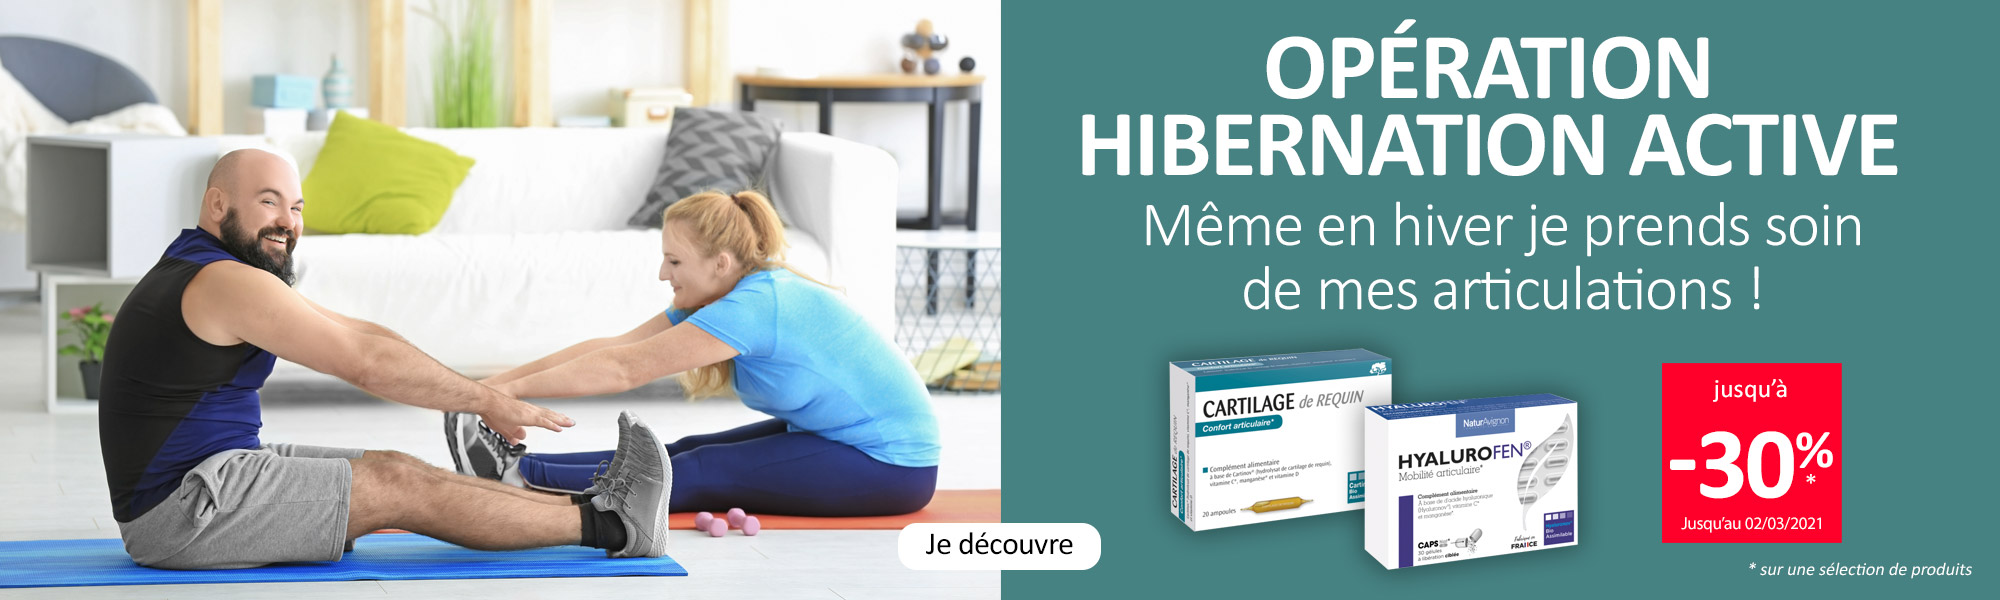 Laboratoire NaturAvignon - Hibernation active